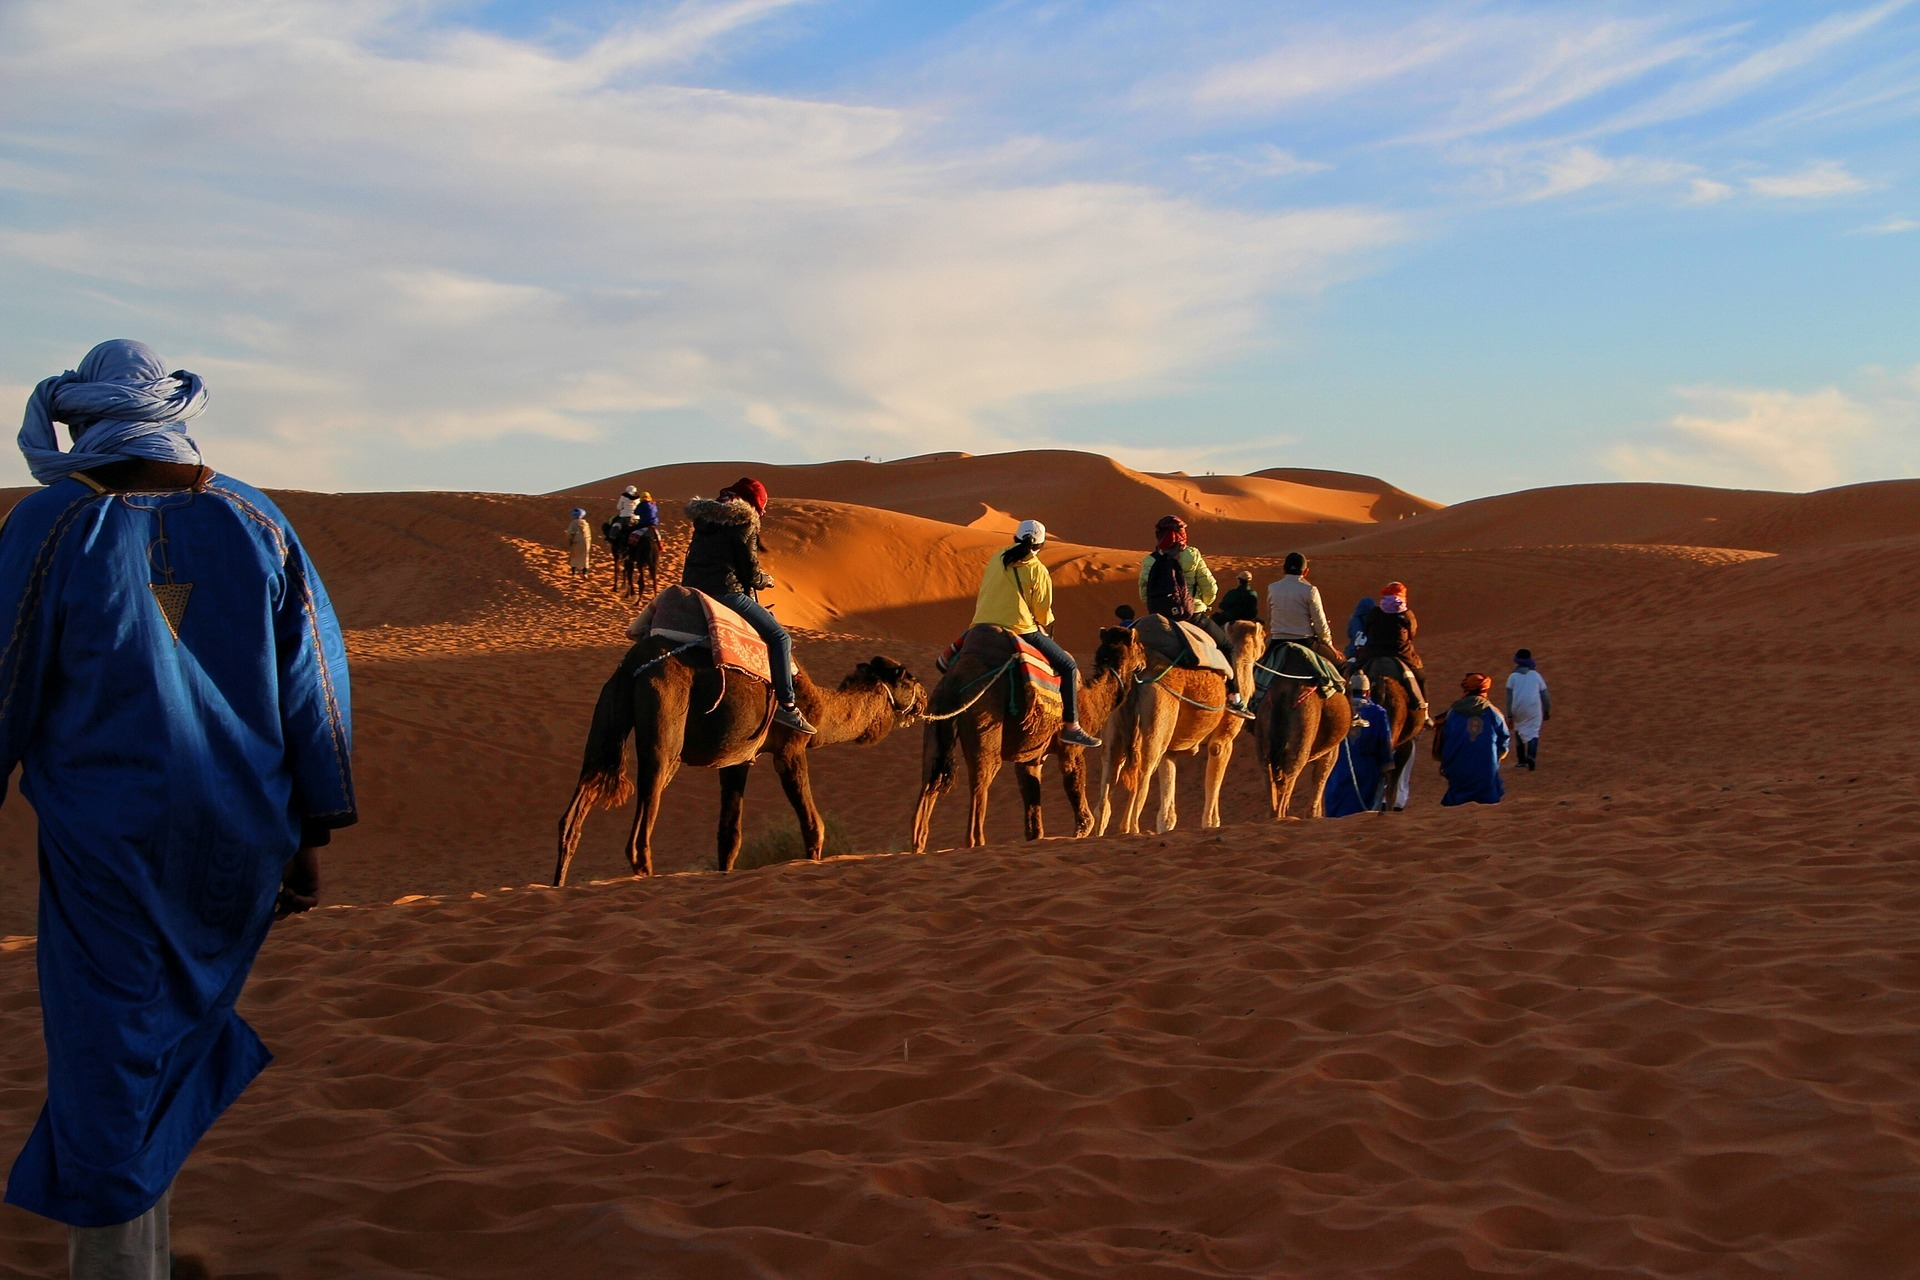 A caravan of travelers makes its way across the Sahara Desert, as people  have done